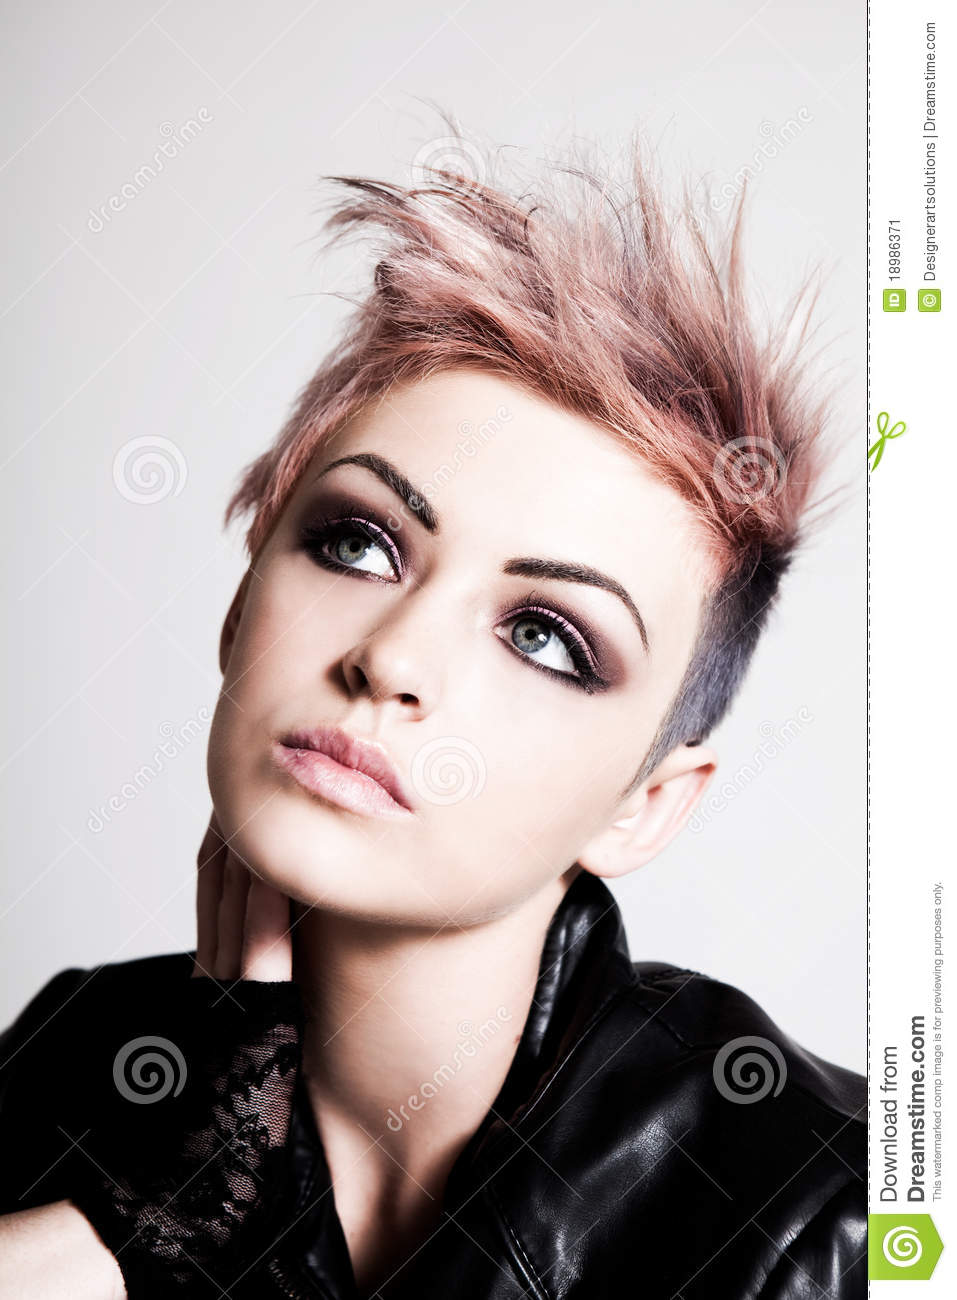 Young Female Punk With Pink Hair Stock Image  Image 18986371